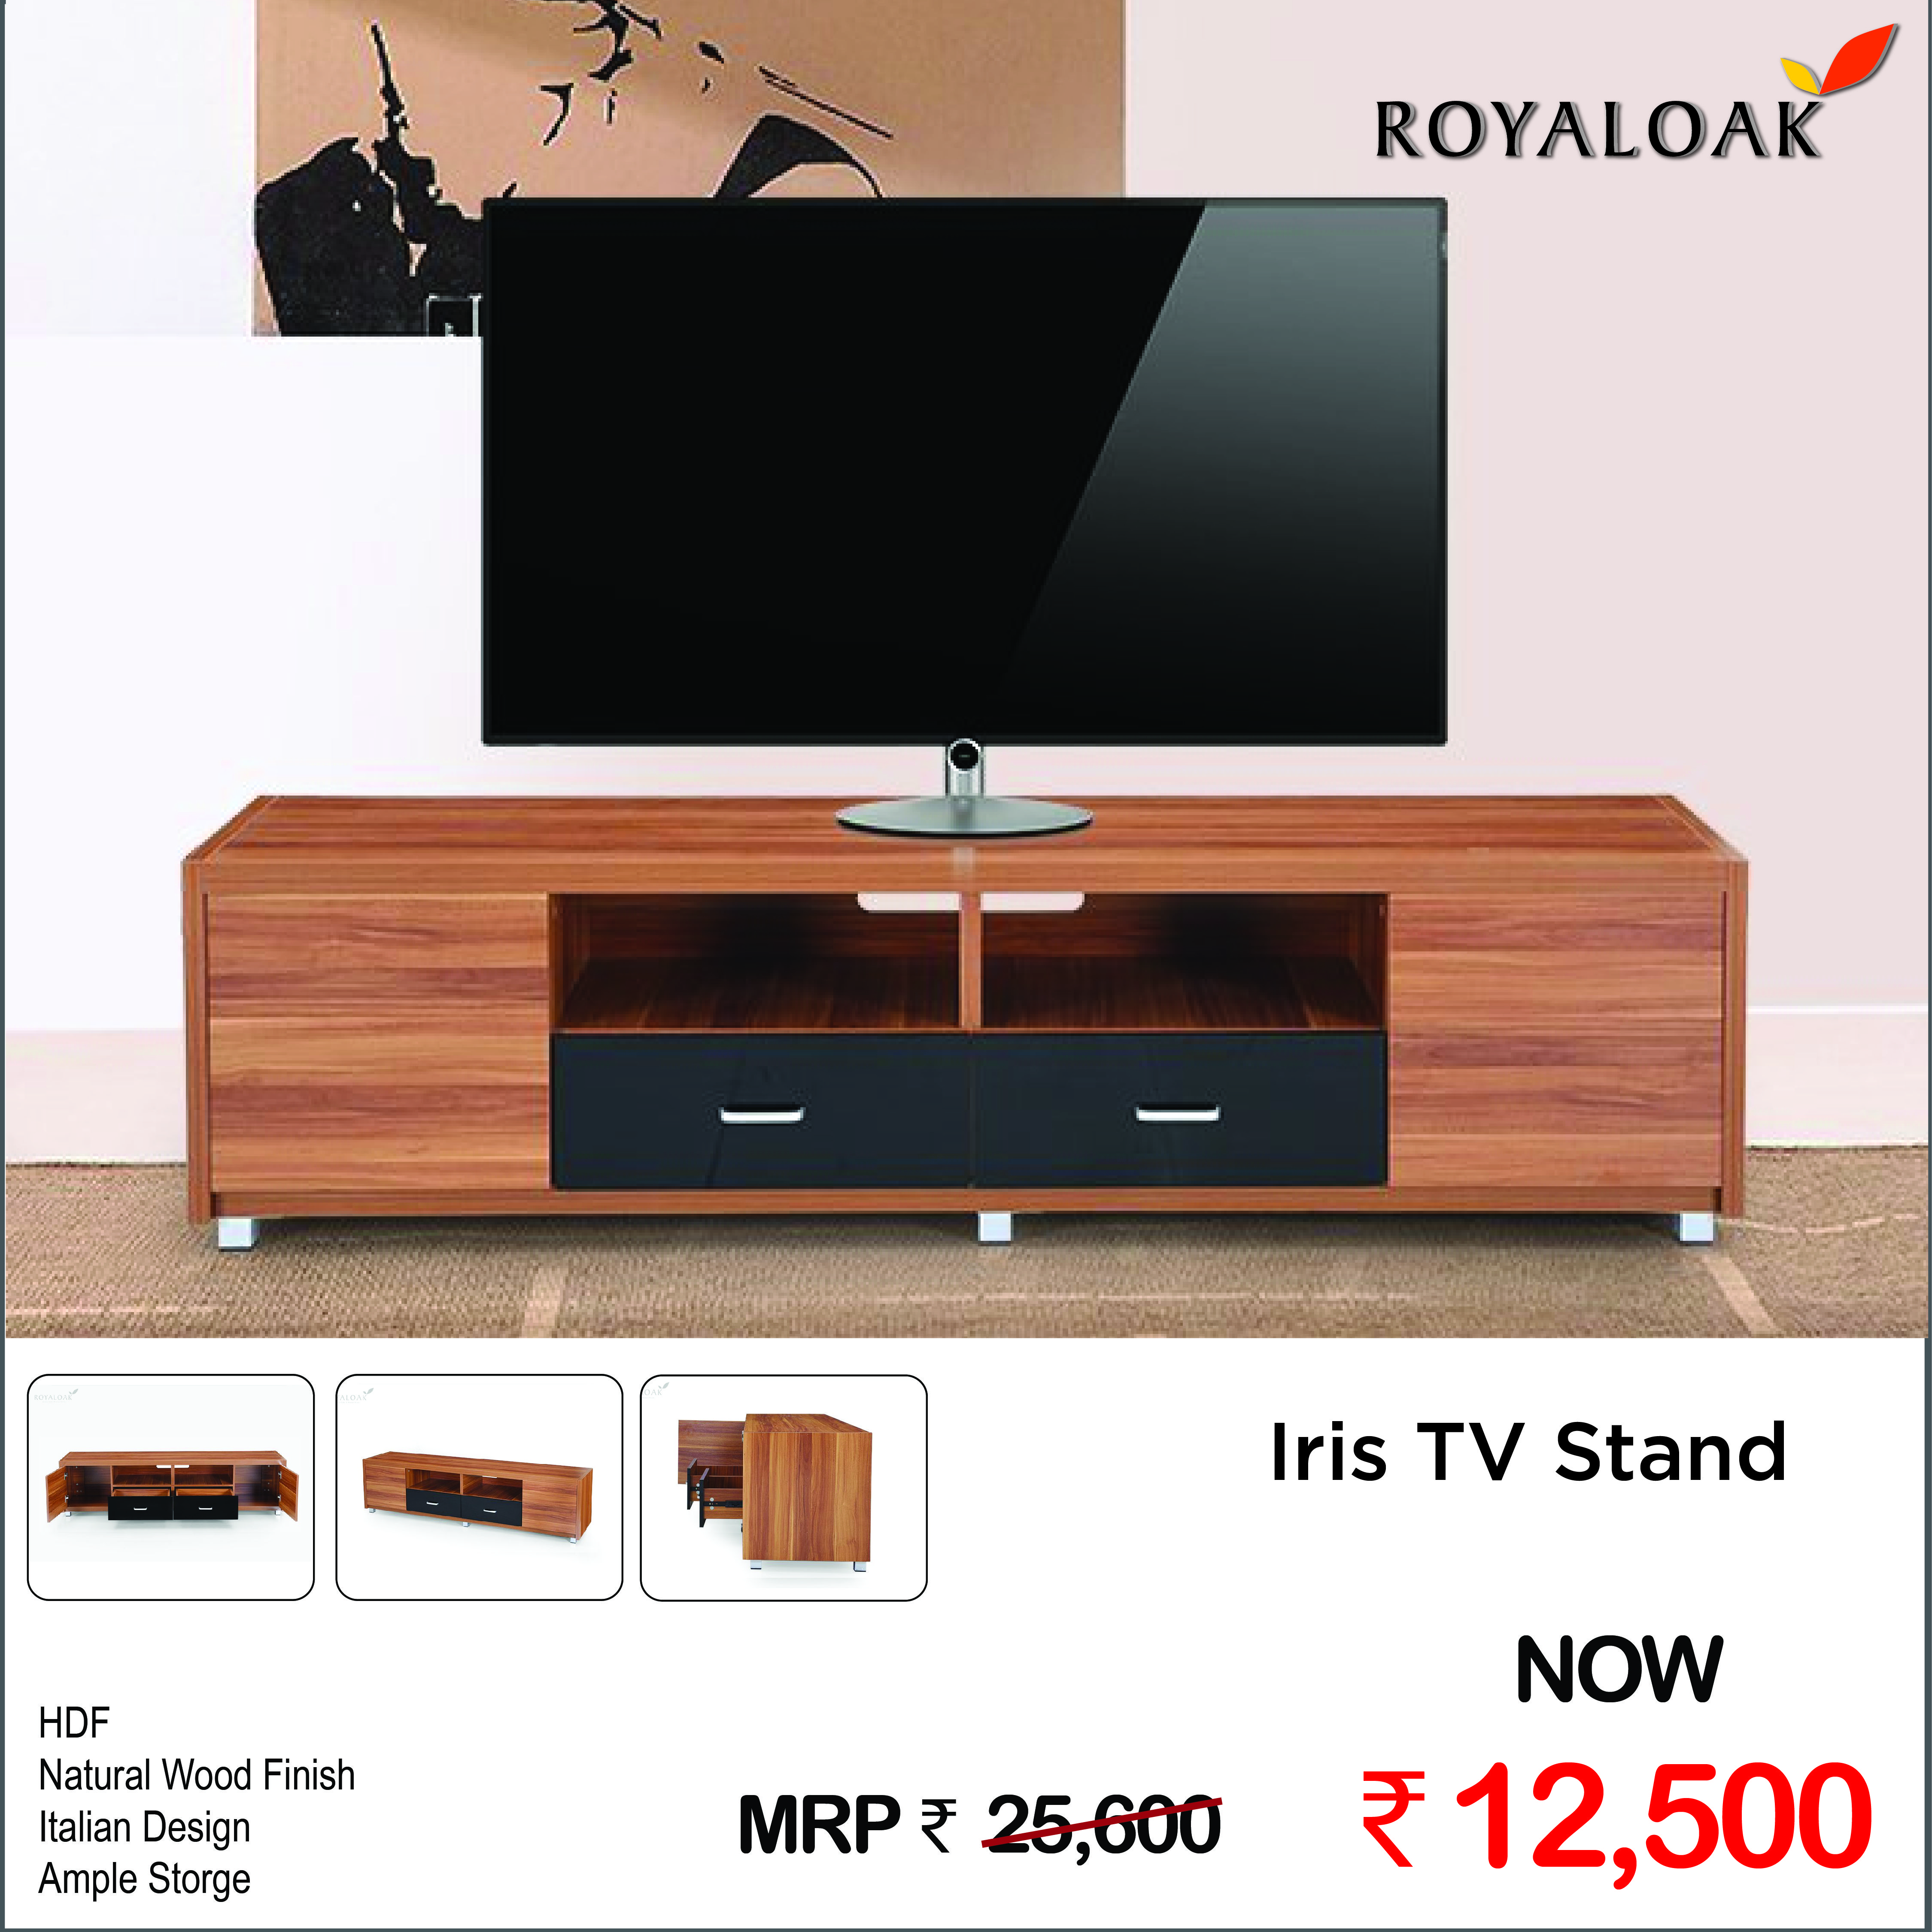 f9bdebf51 15 Best Royaloak LCD Stands images